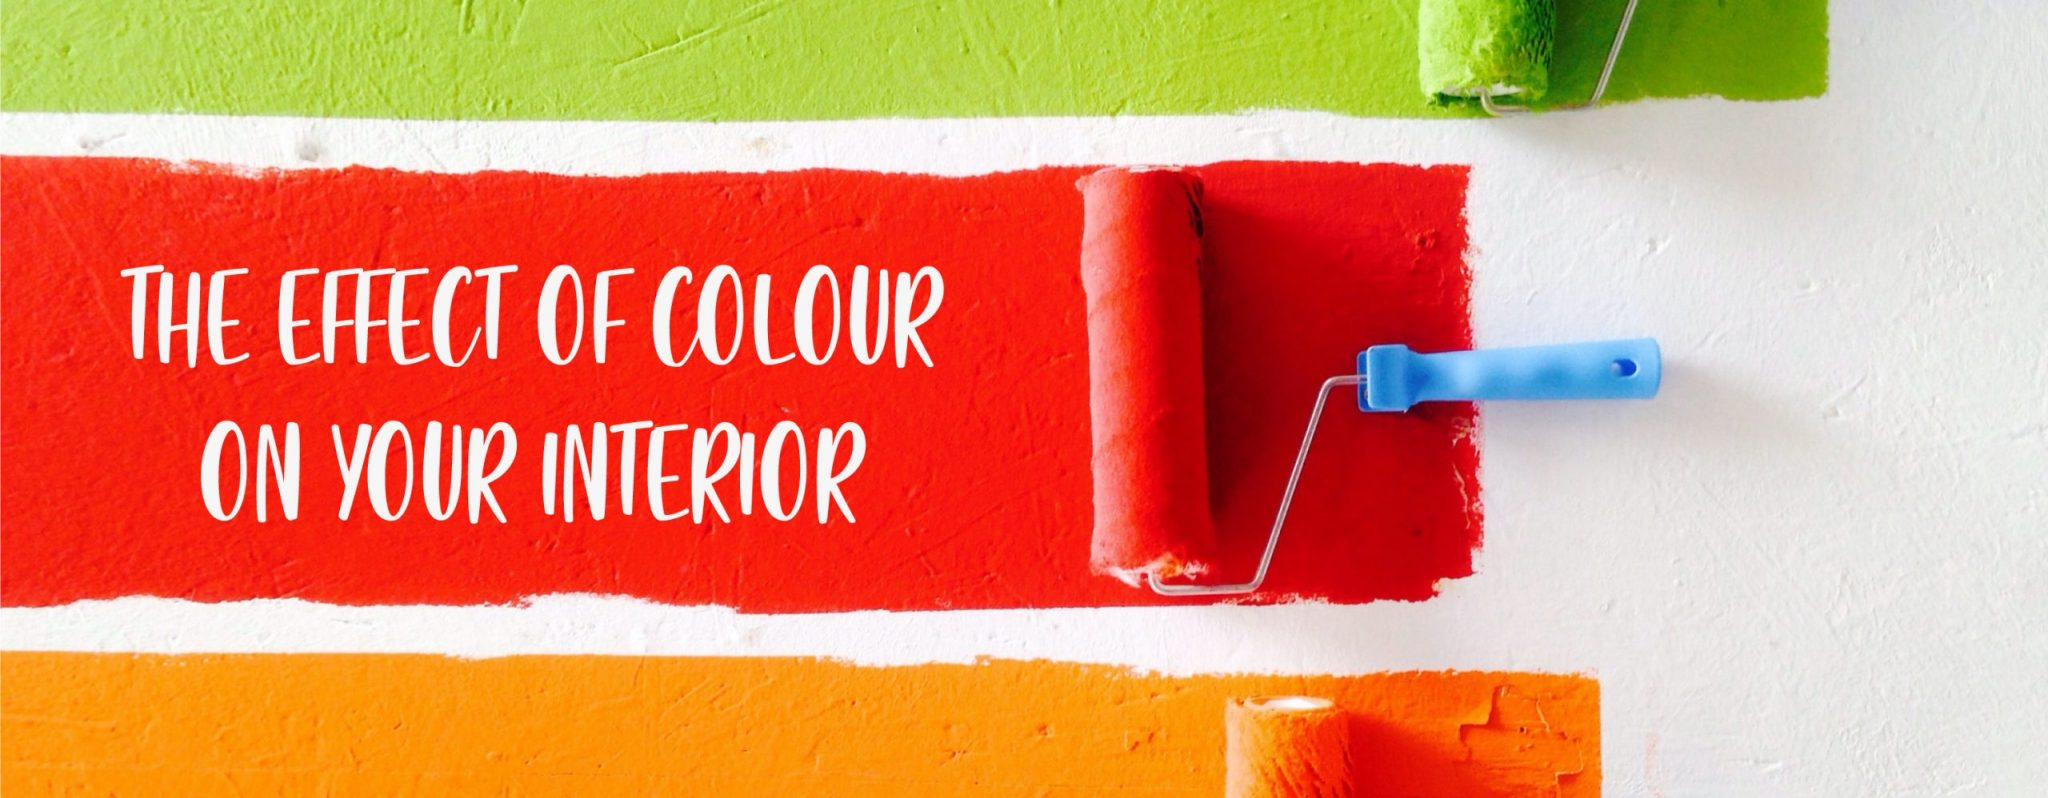 The effect of colour on your interior